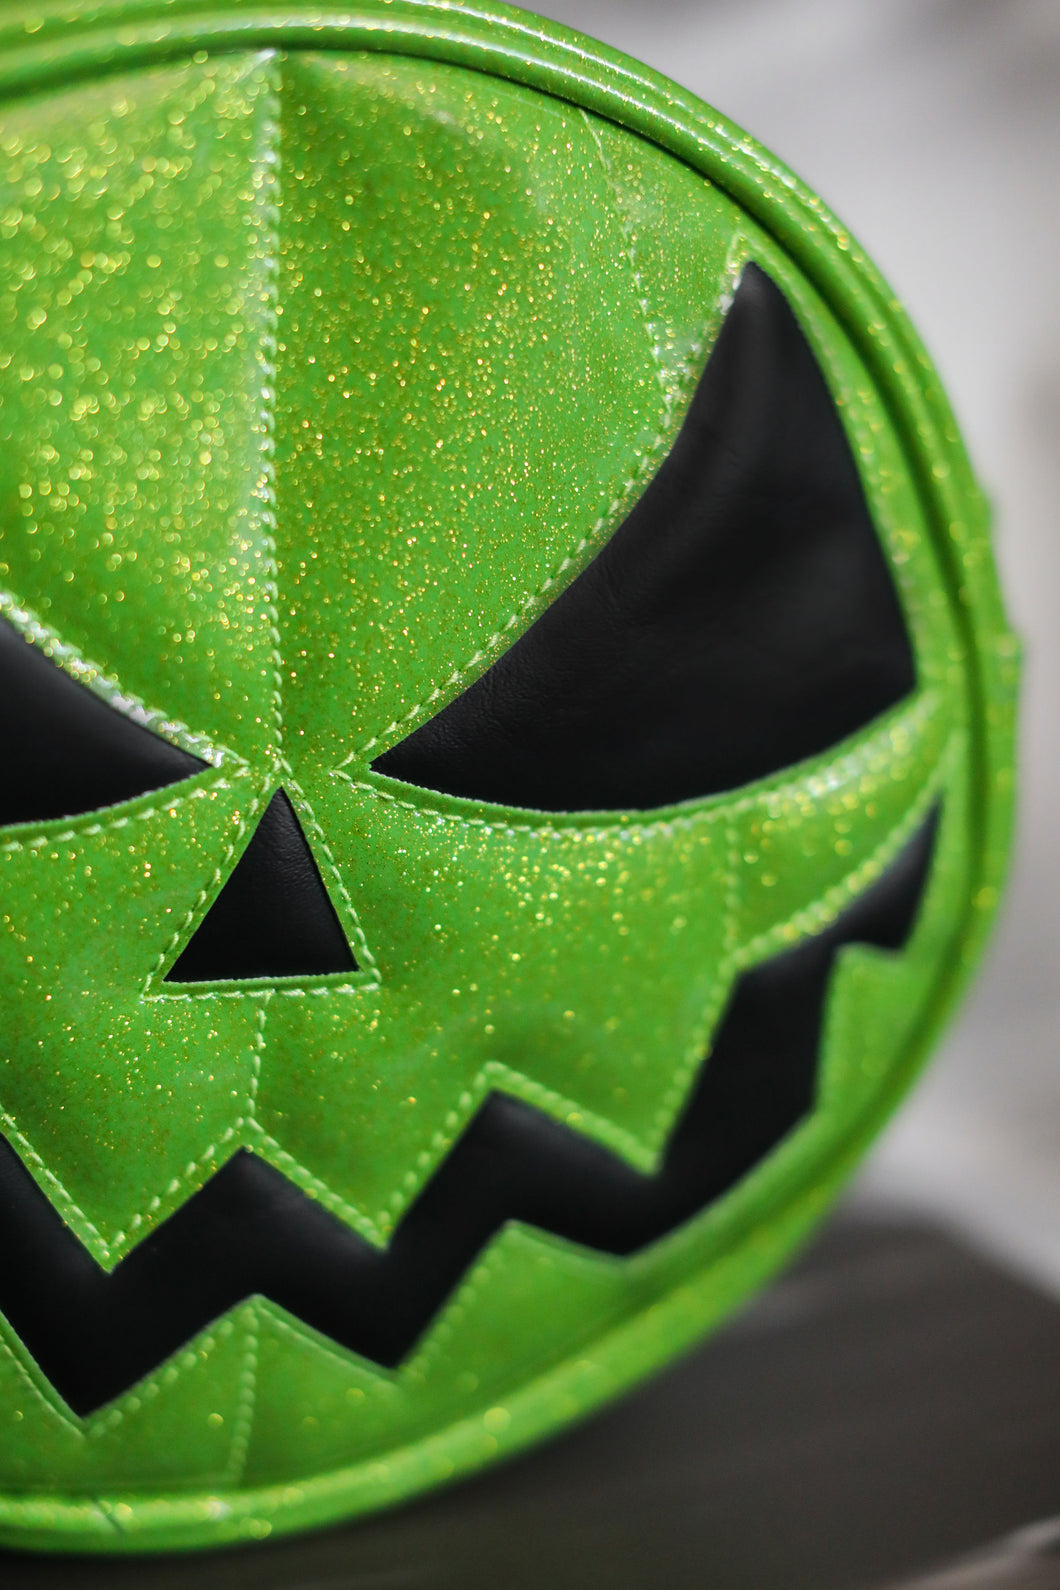 Green Glitter Jack O'Lantern Bag with Black Eyes and Mouth